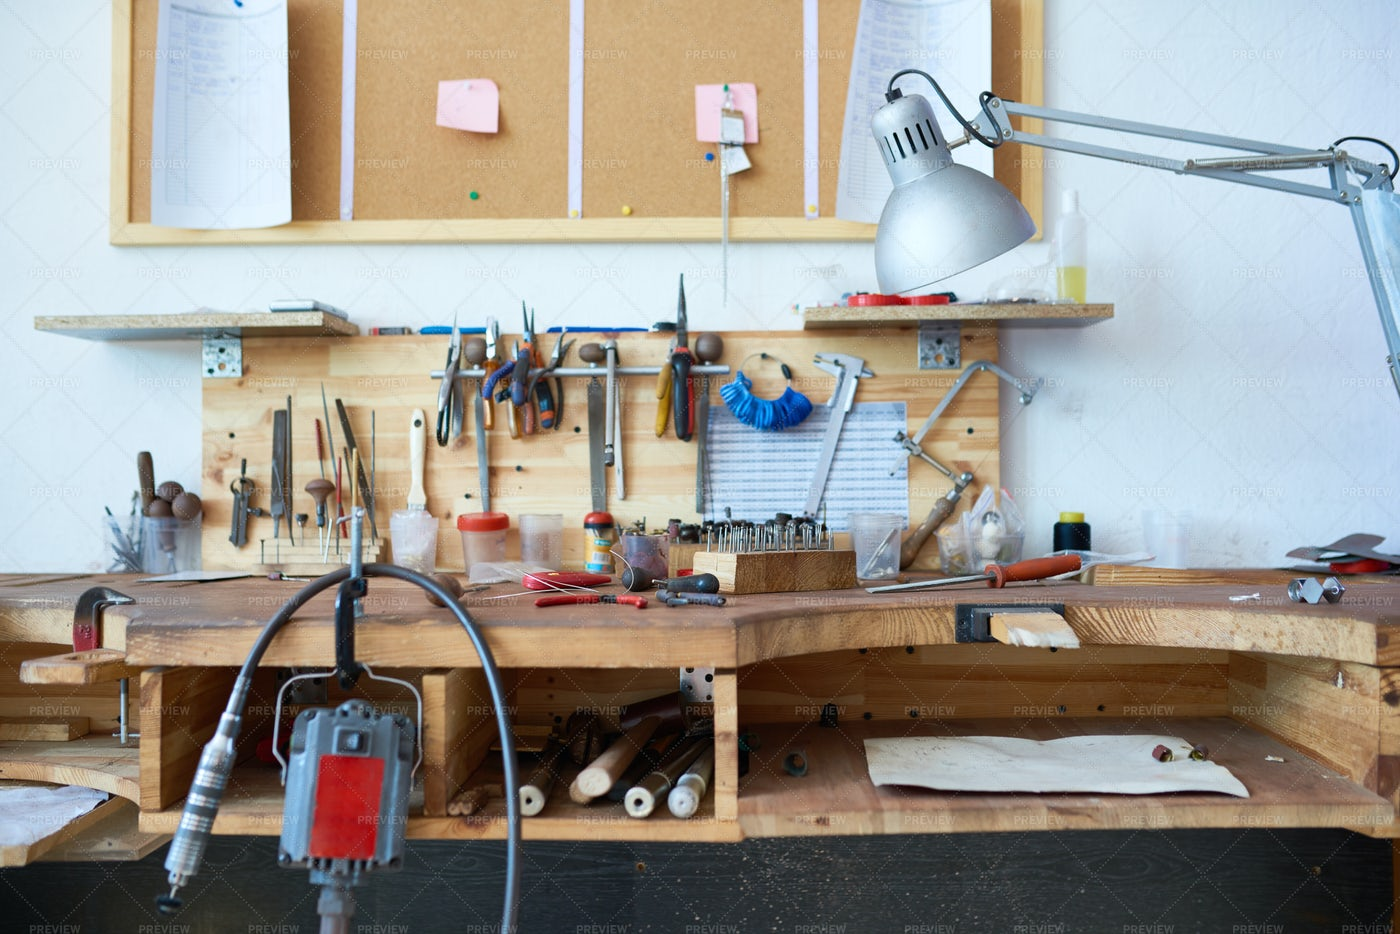 Work Table With Tools: Stock Photos